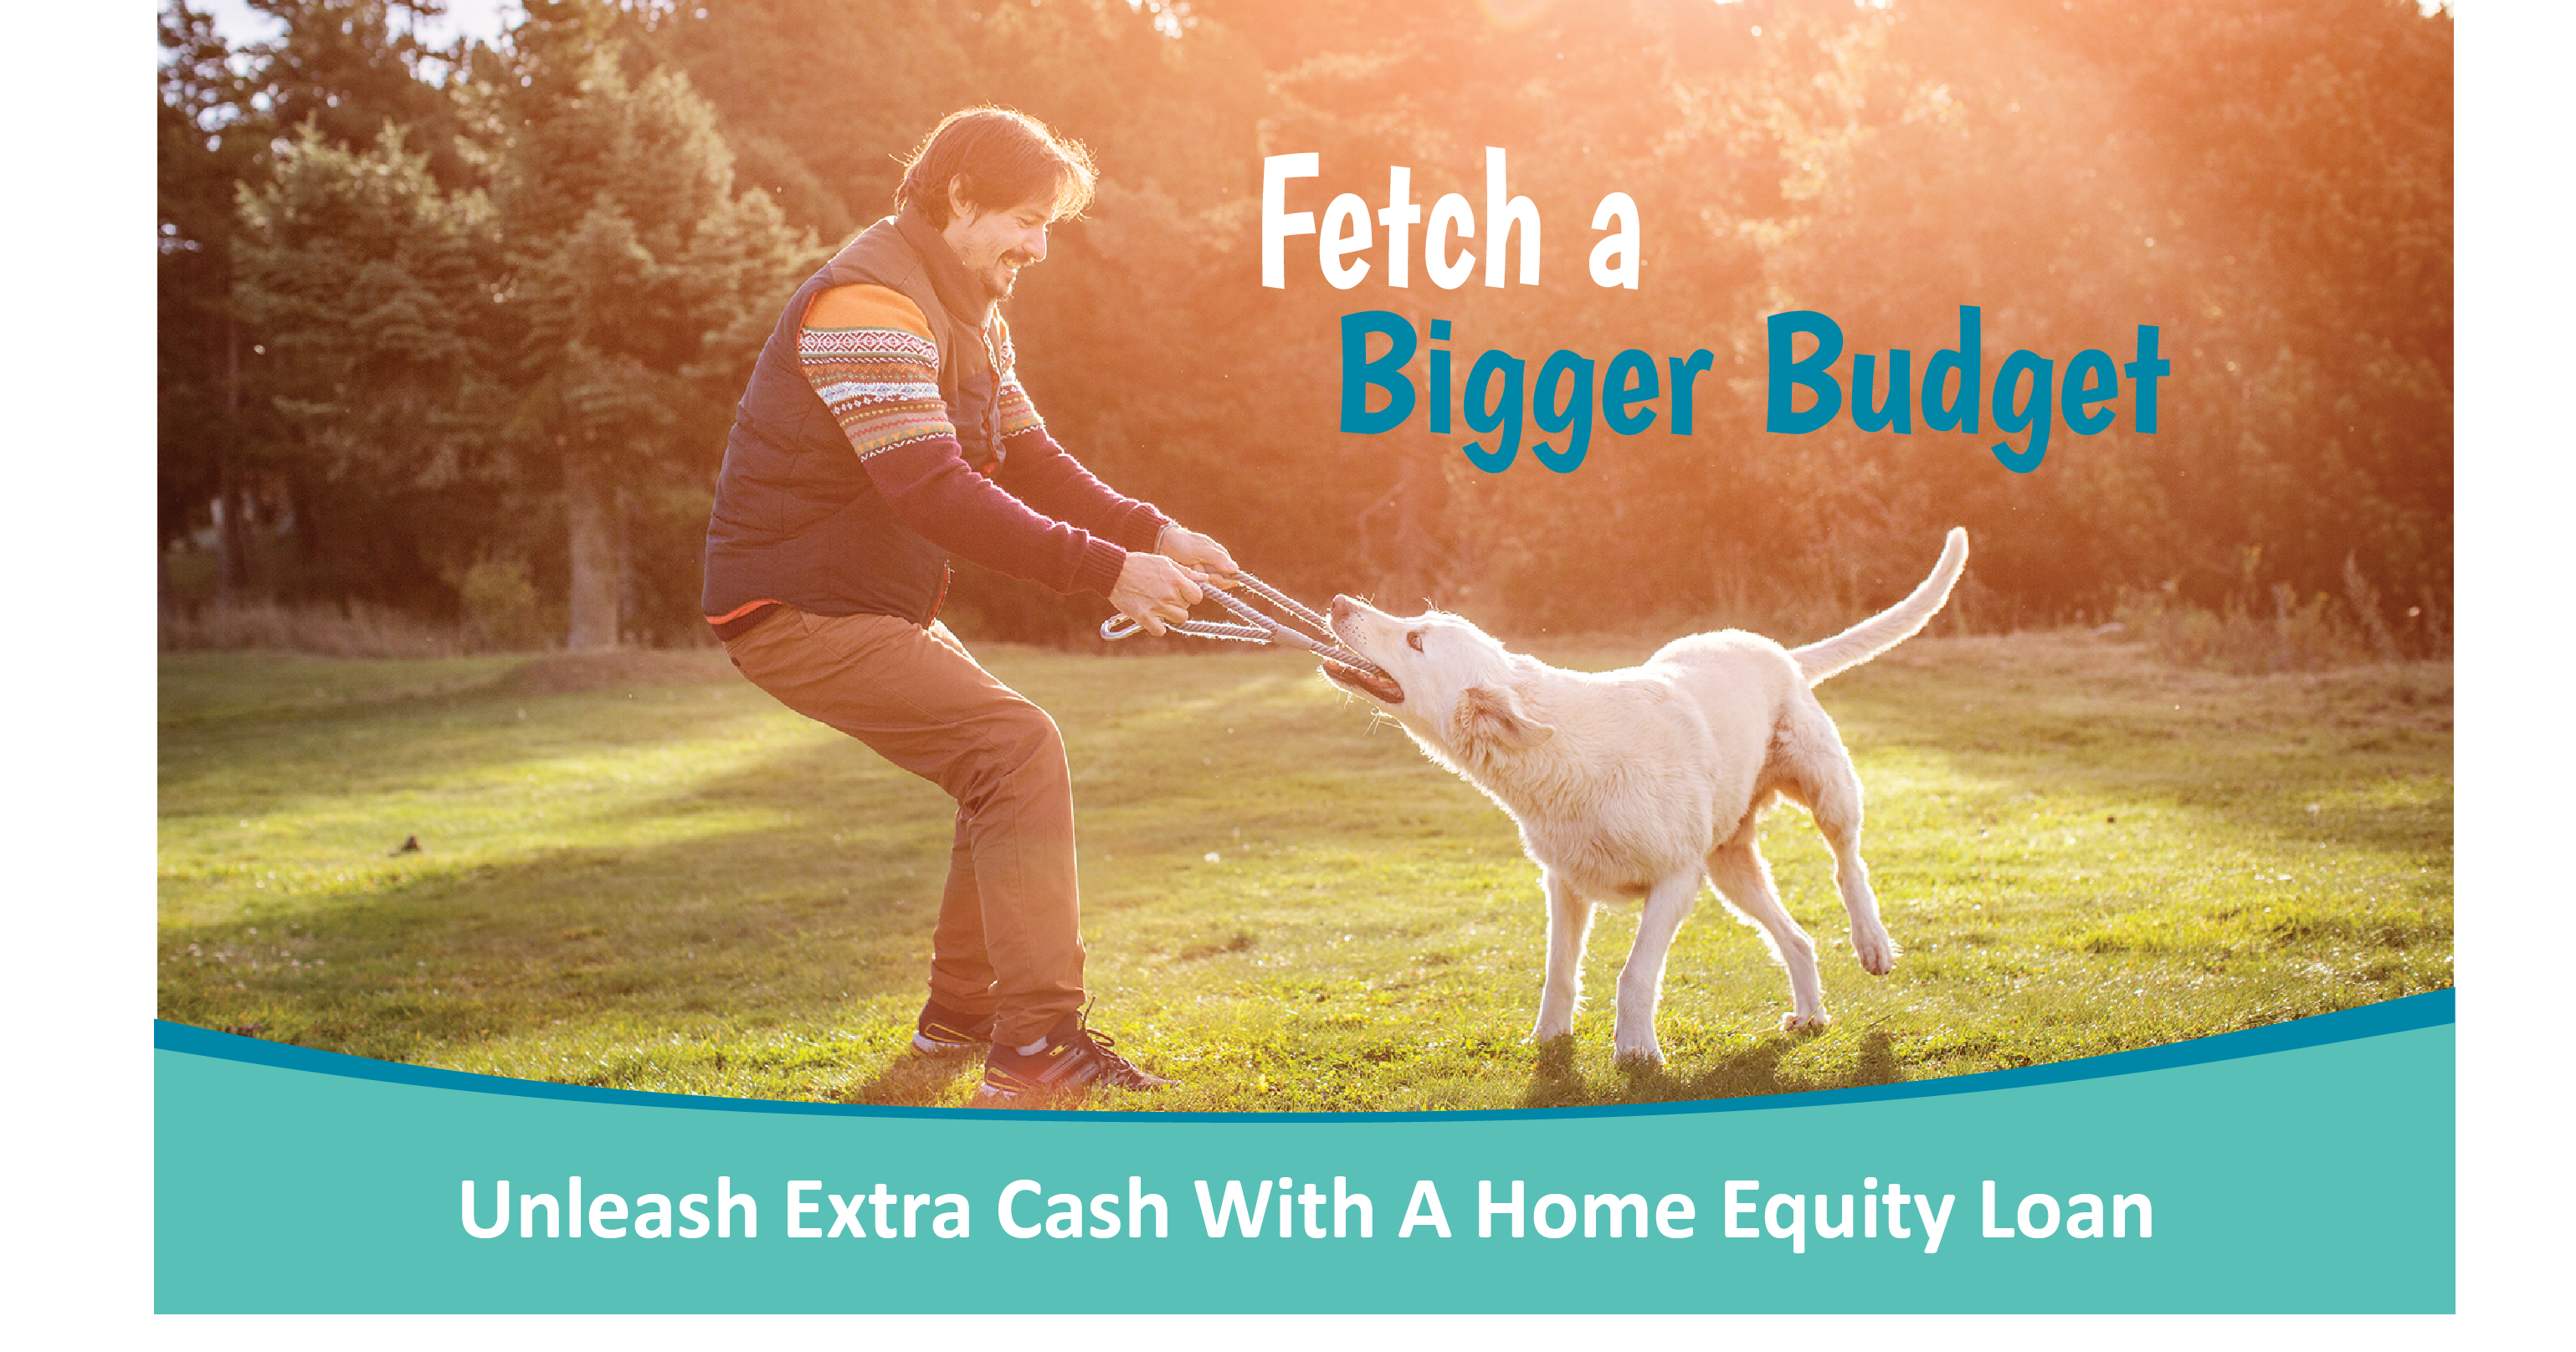 Unleash Extra Cash with a Home Equity Loan